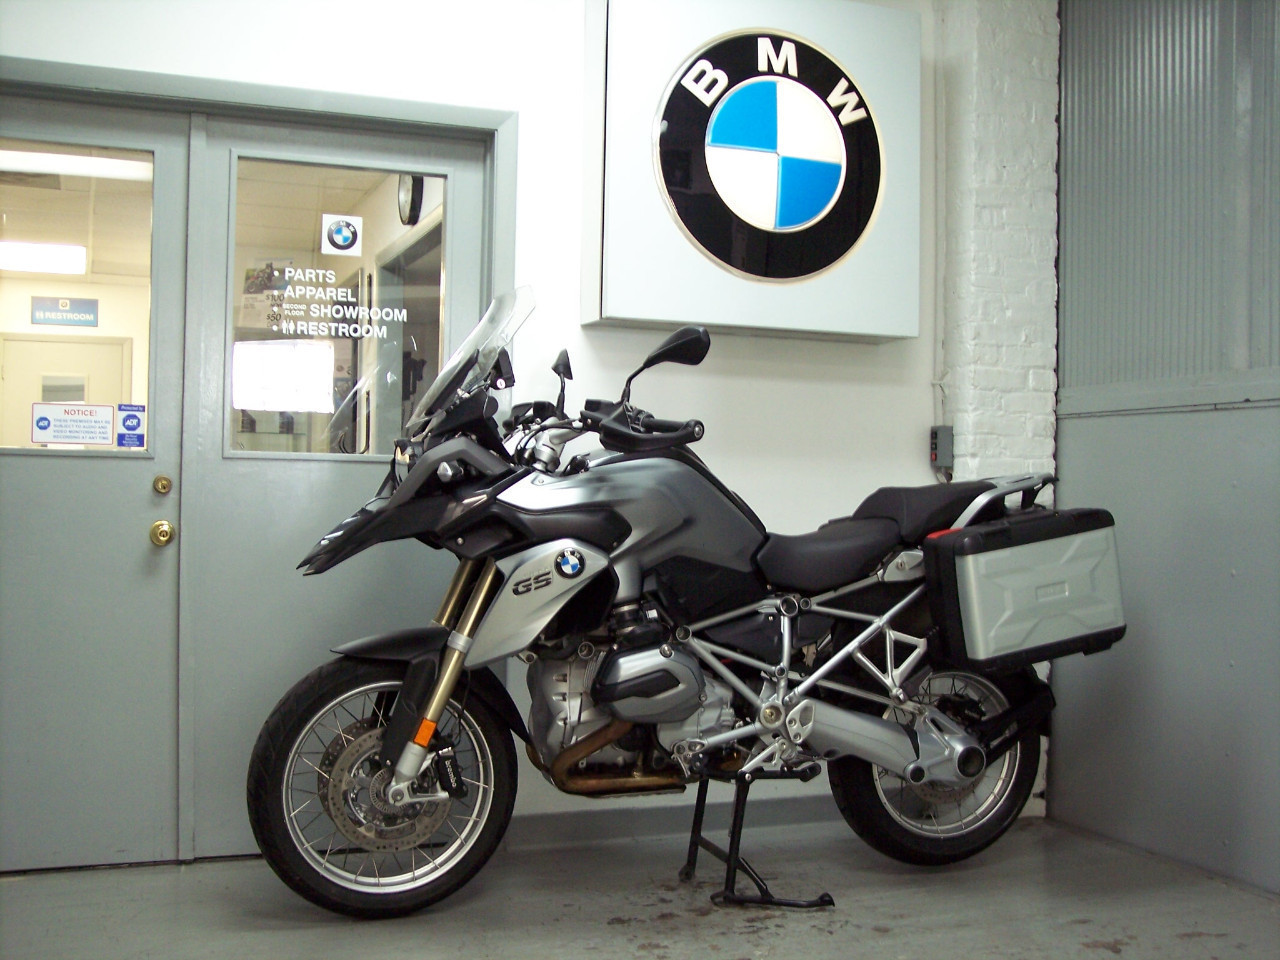 2013 BMW R1200GS LOW SEAT, motorcycle listing